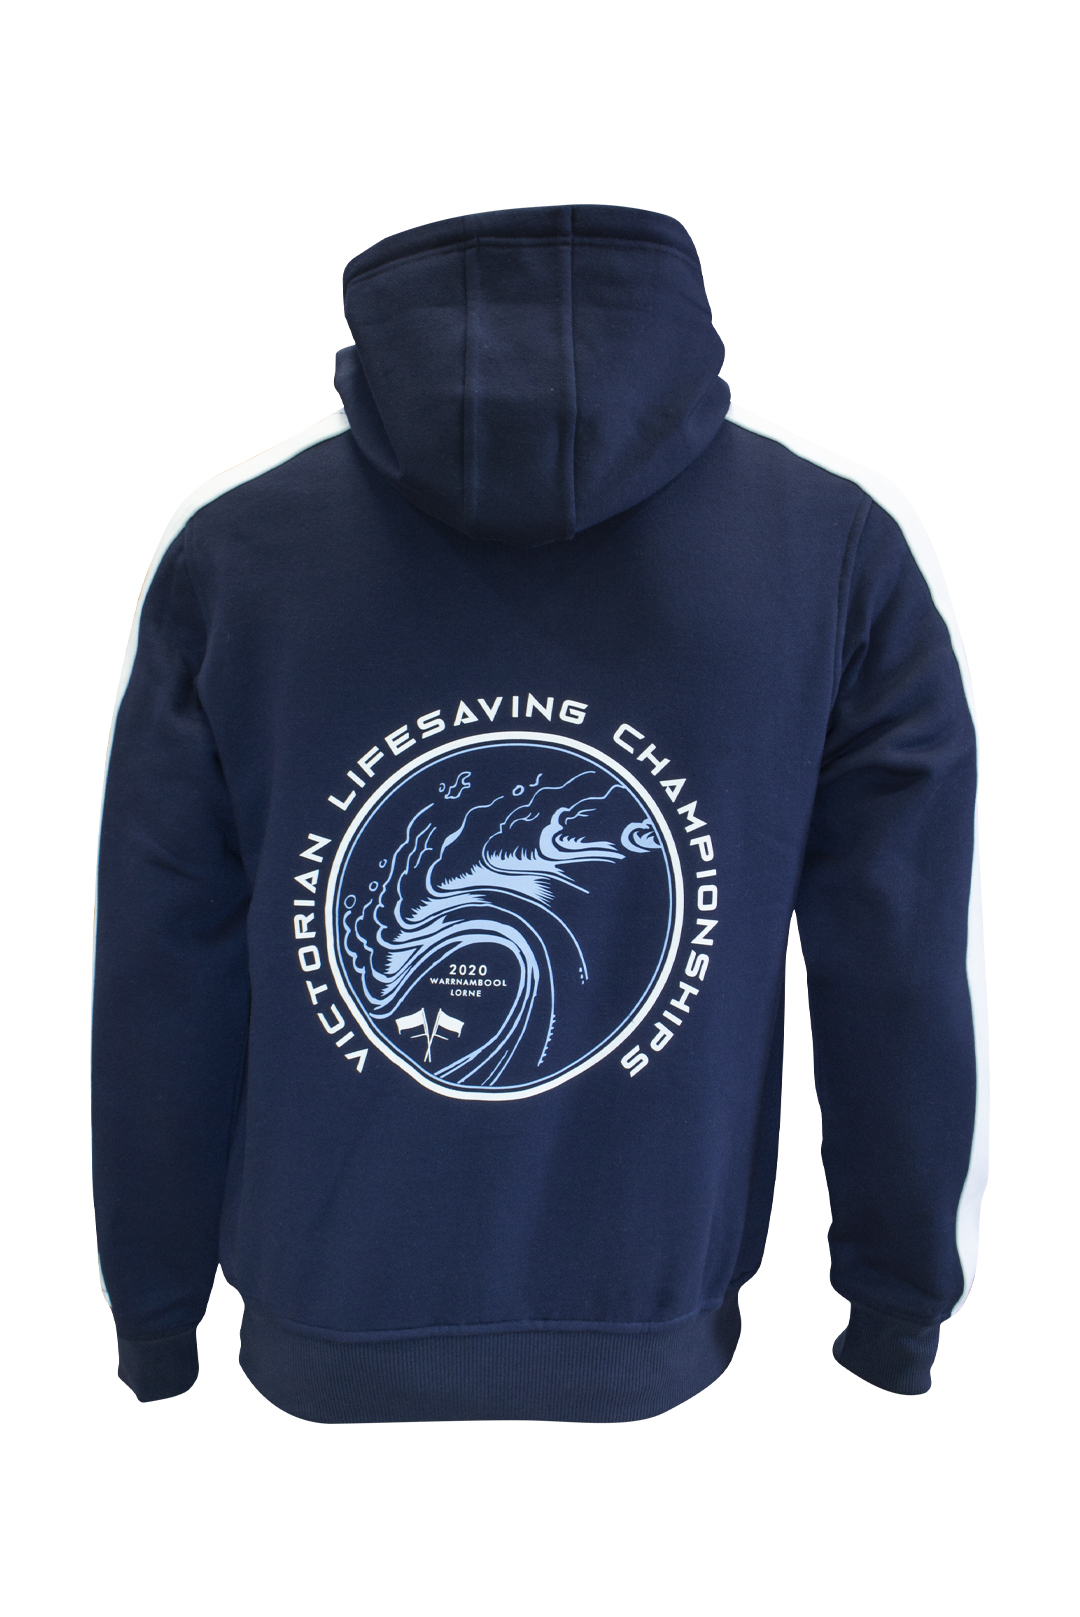 LSV 2020 State Championships Hoodie